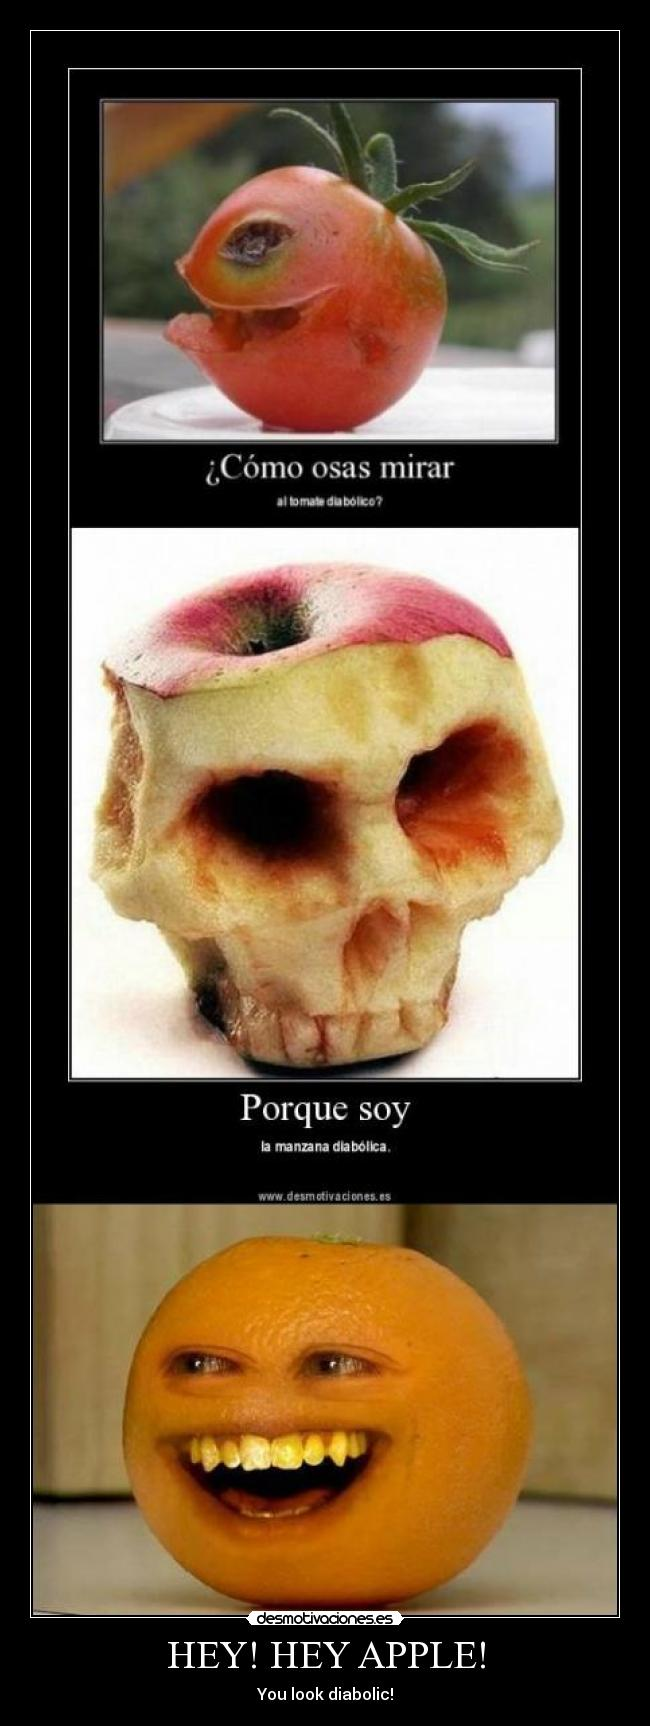 HEY! HEY APPLE! - You look diabolic!